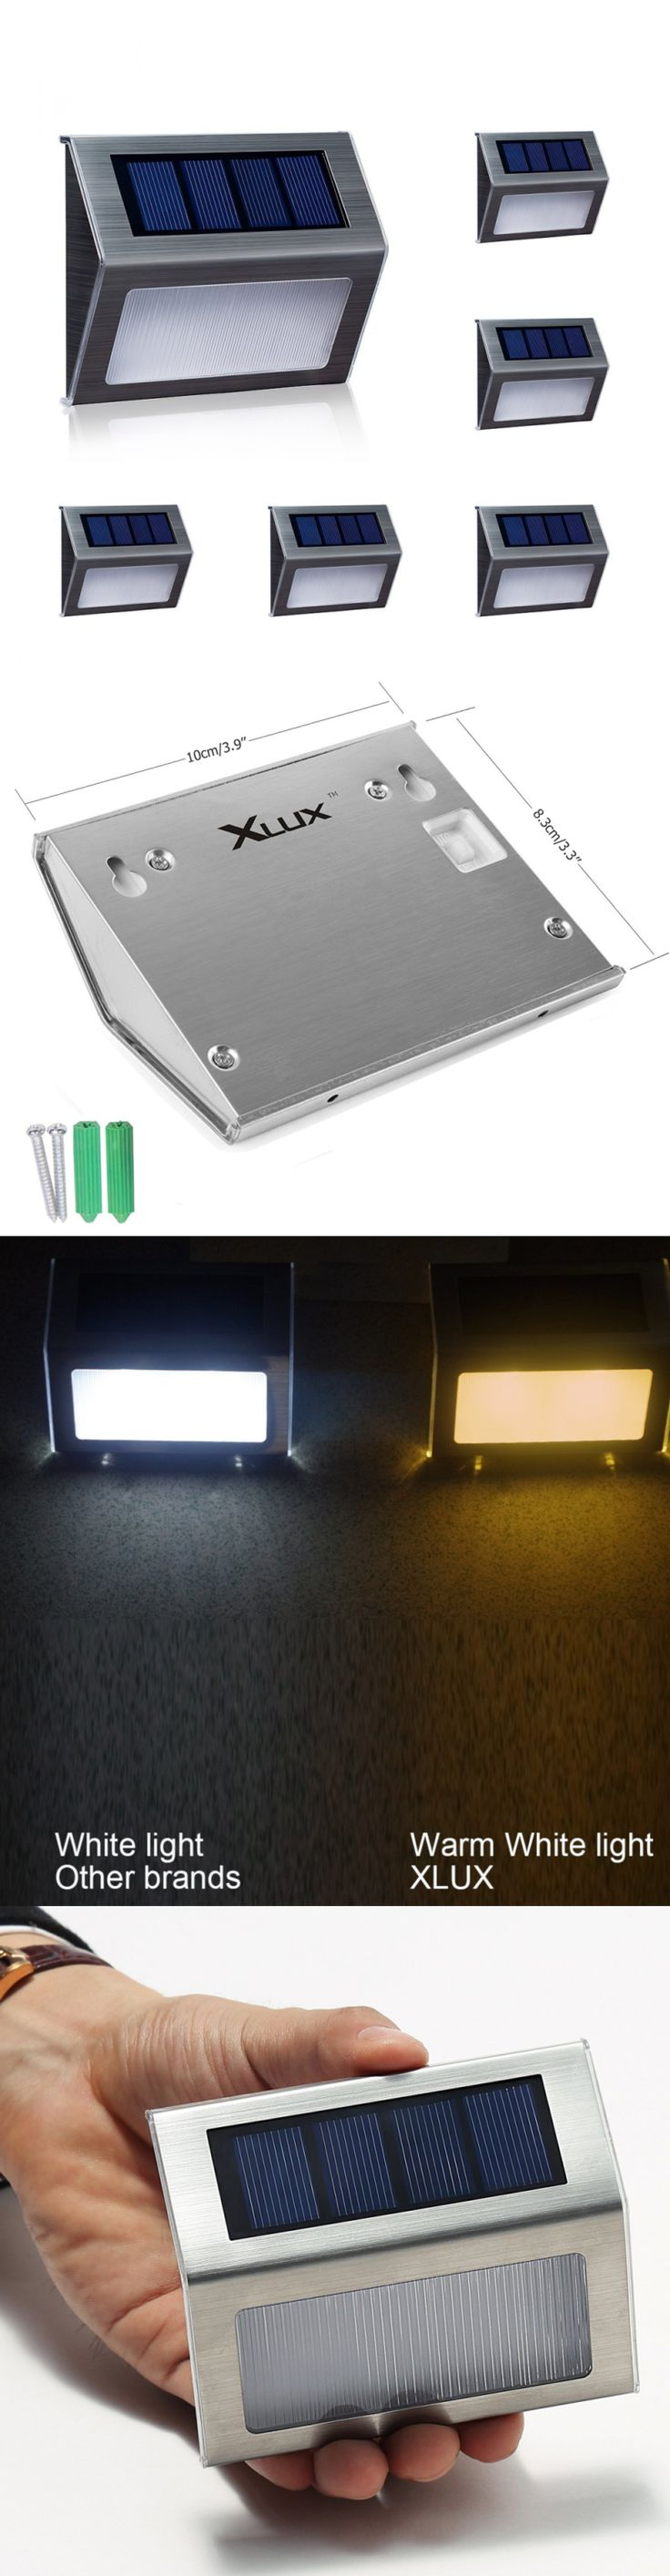 Solar power round recessed deck dock pathway garden led light ebay - Landscape And Walkway Lights 94940 Solar Lights For Steps Pathway Yard Stairs Led Lamp